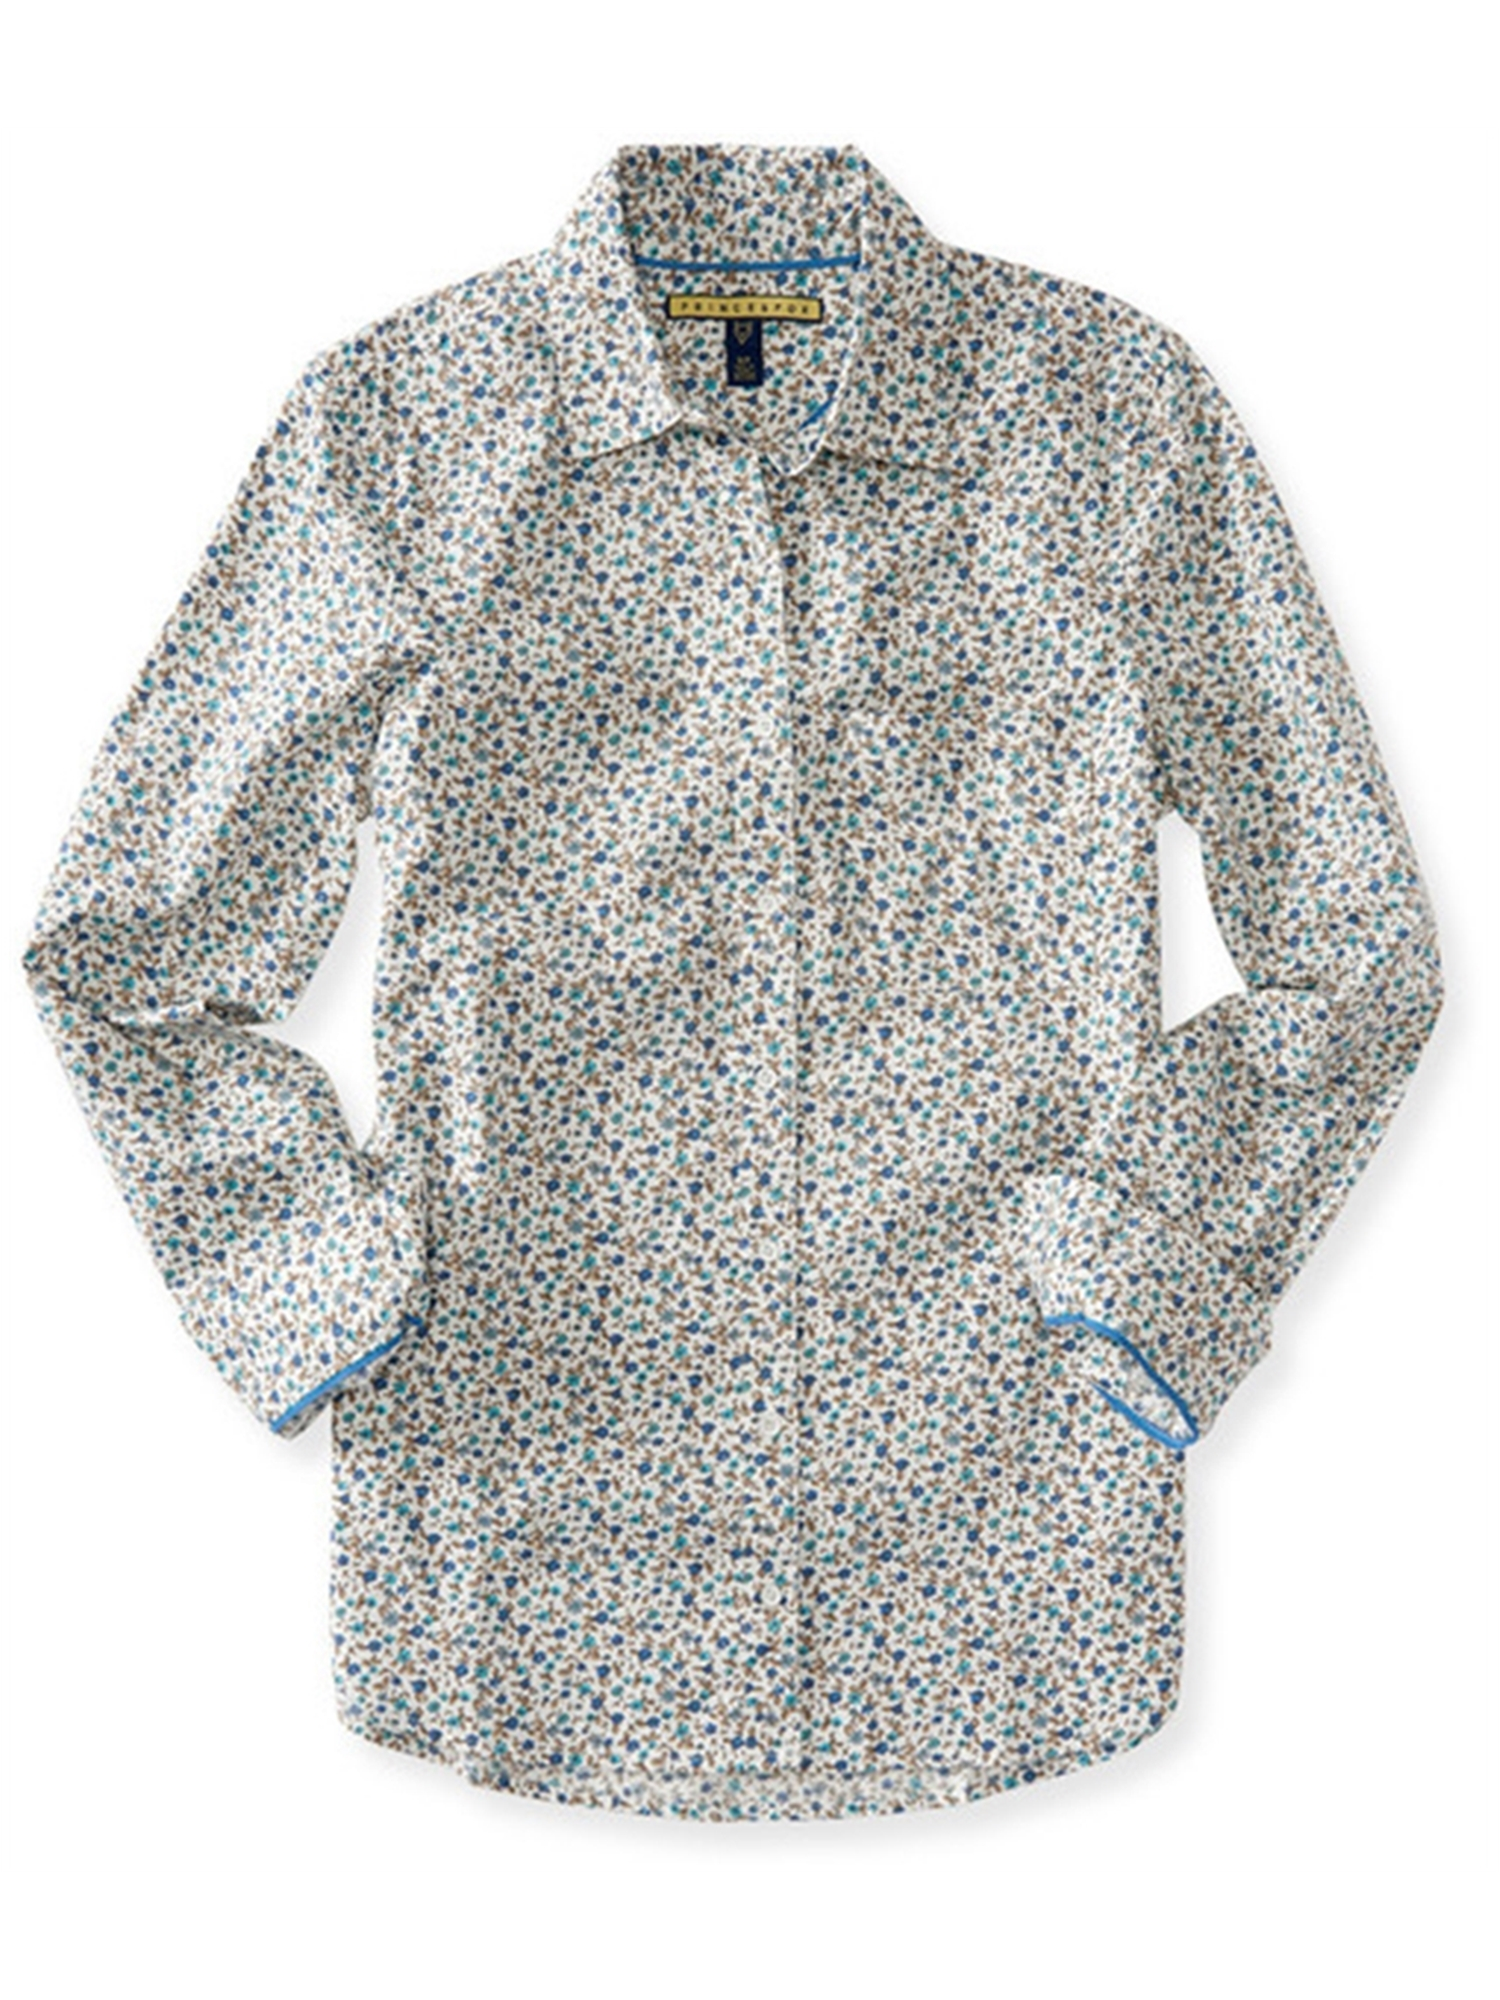 Aeropostale Juniors Ditsy Floral Button Up Shirt